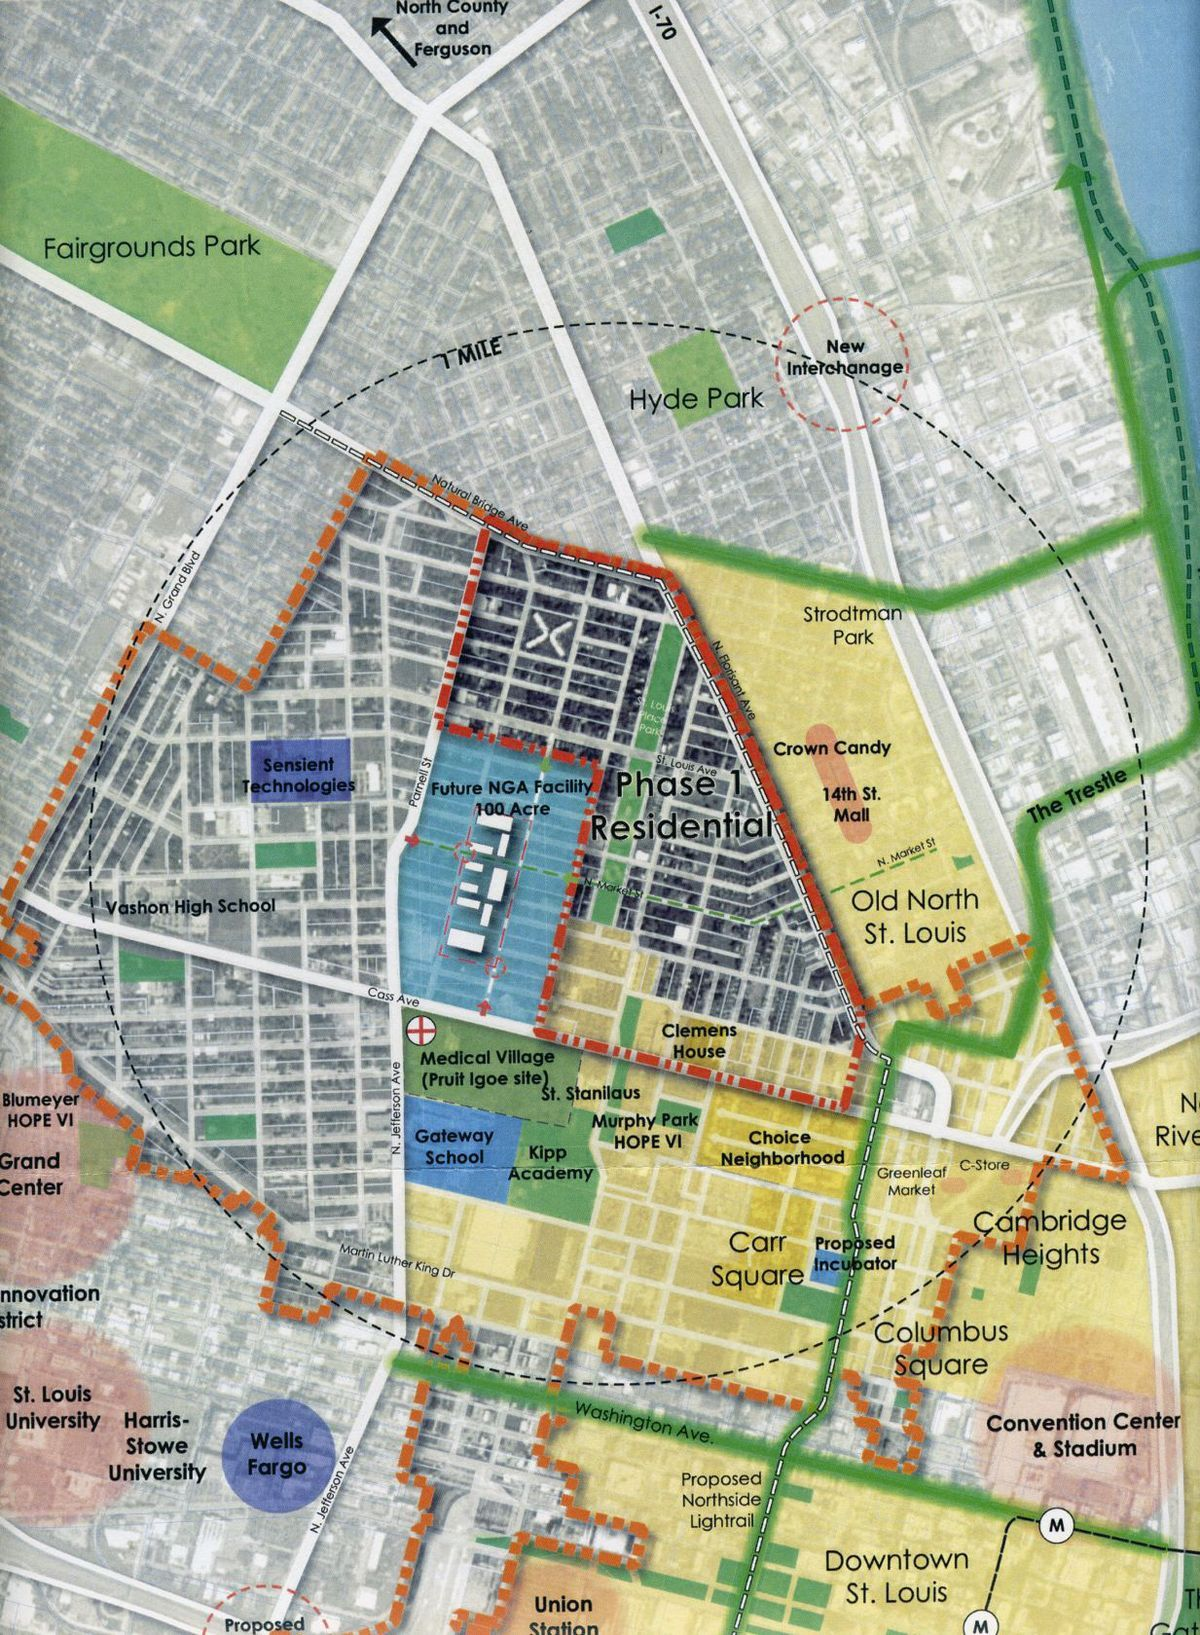 McKee plans 500-unit housing project near NGA site | Mapping ideas ...